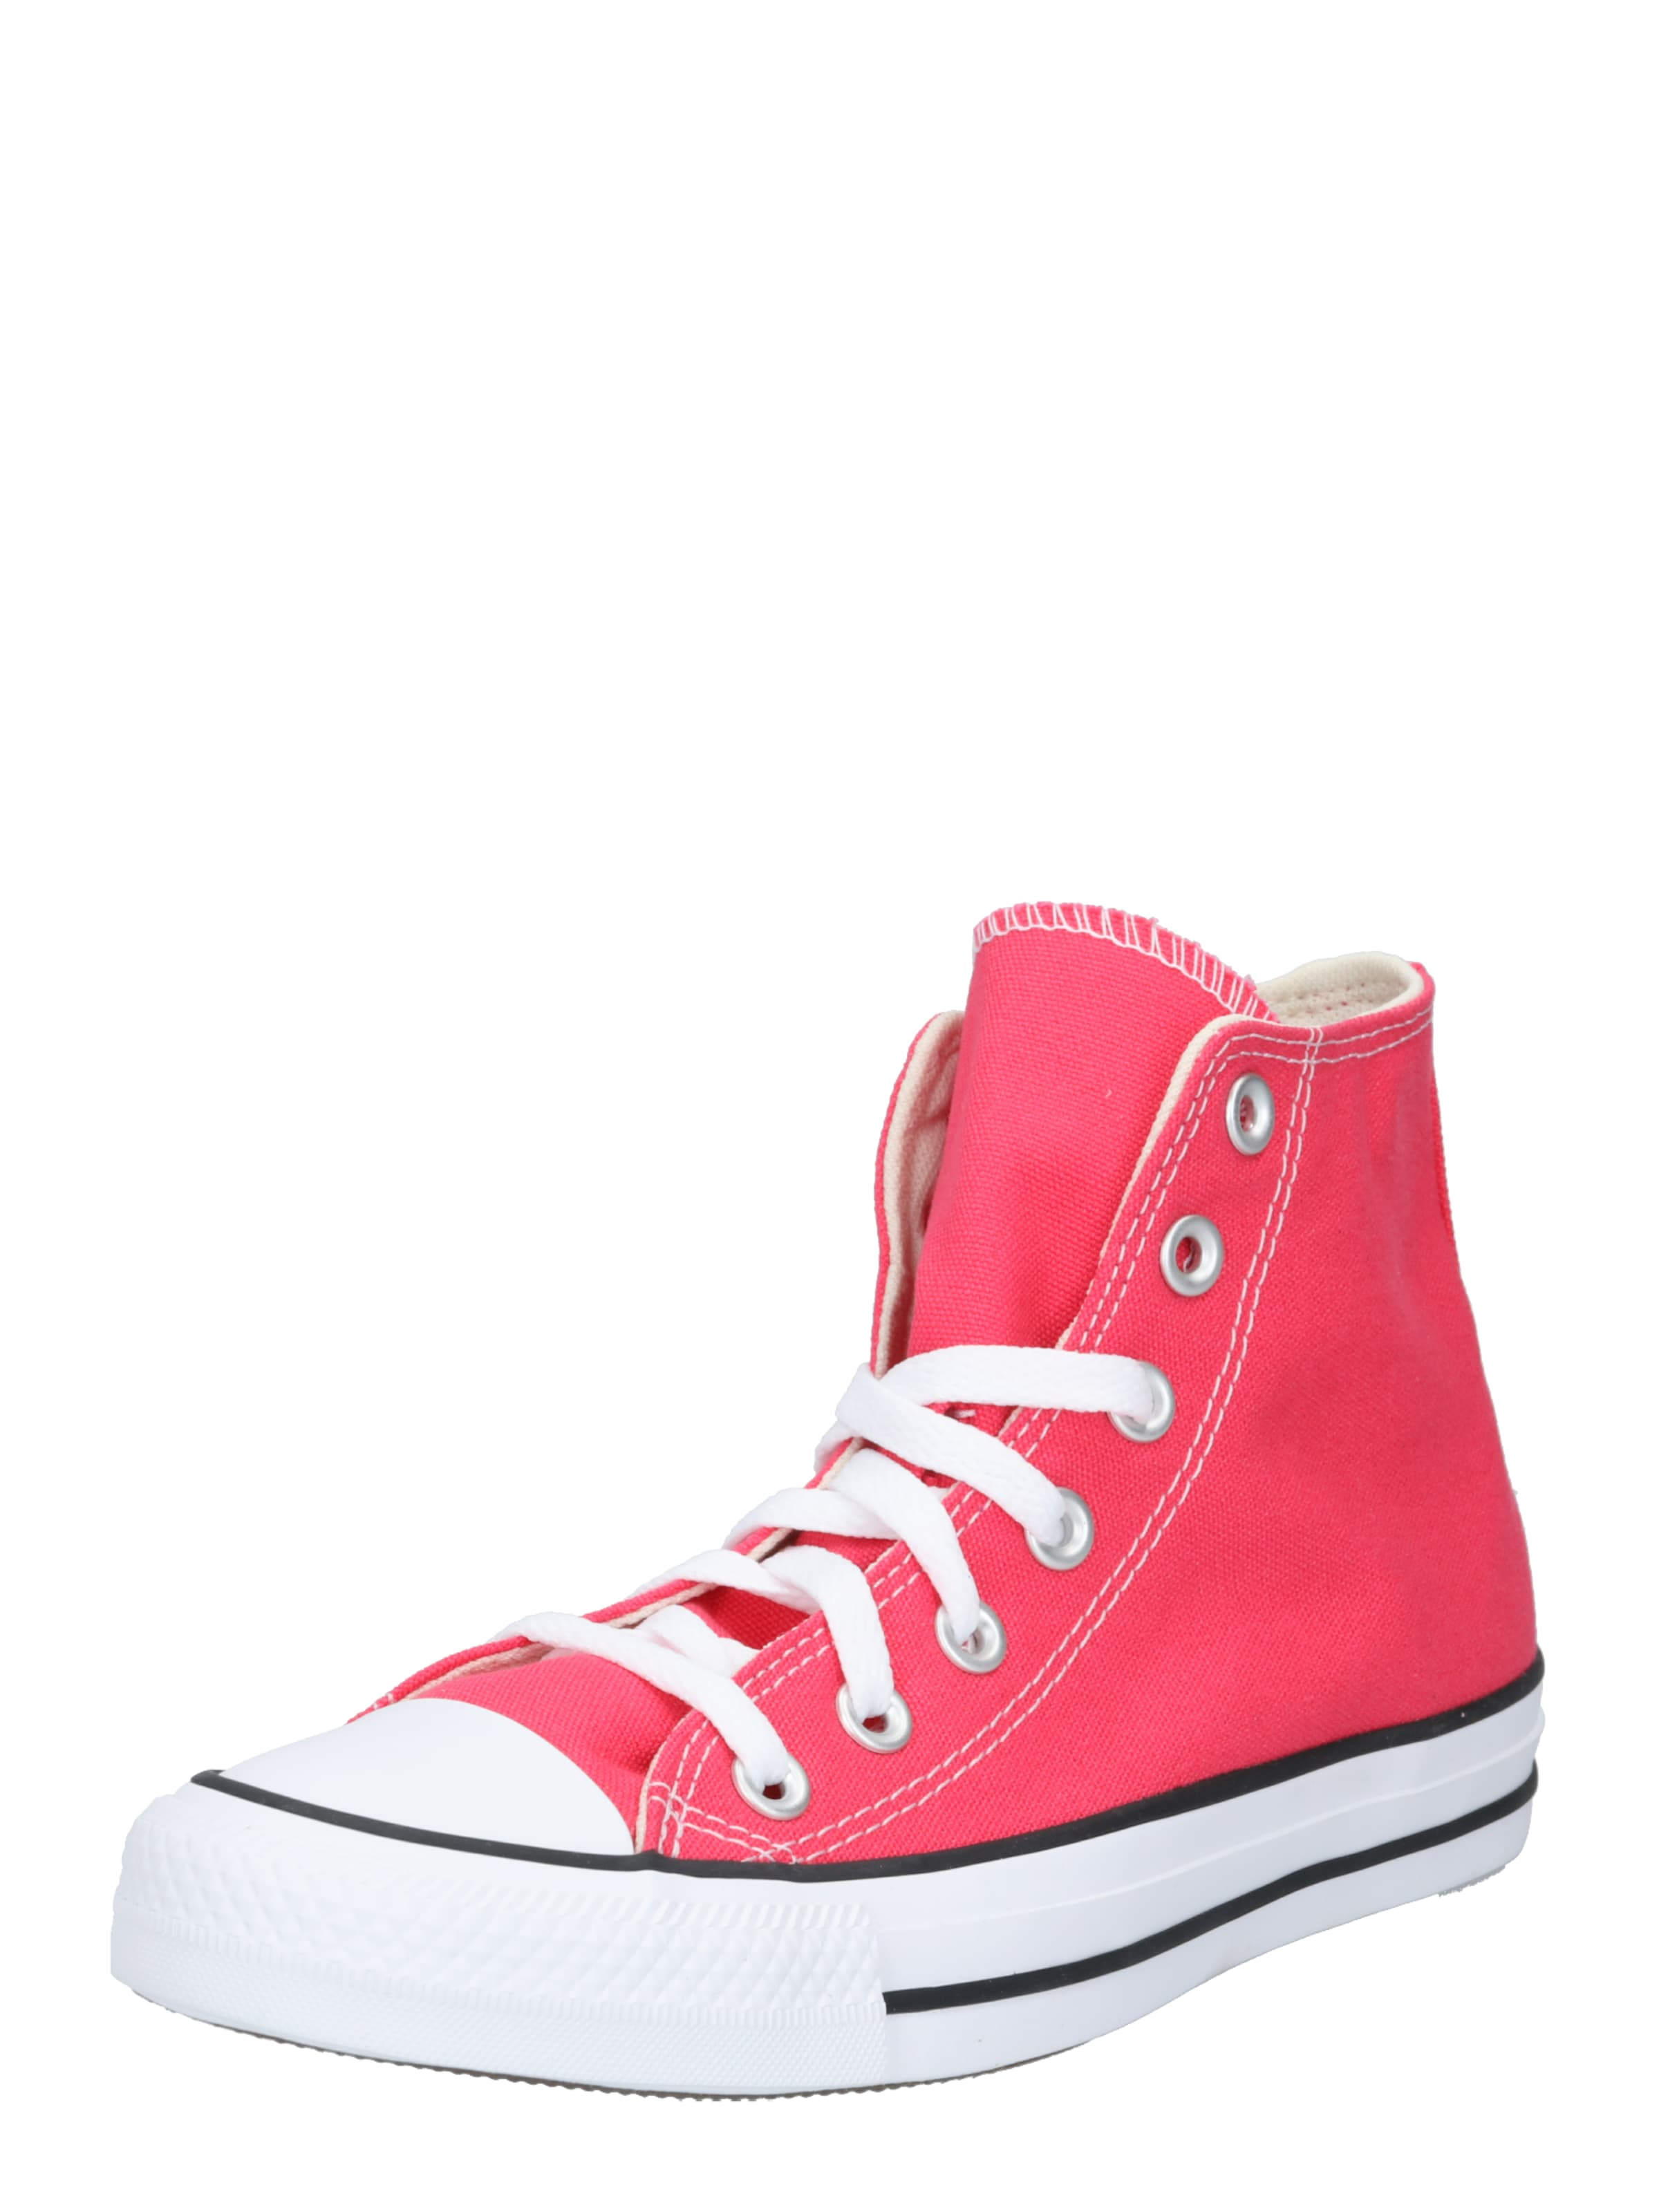 CONVERSE Sneaker 'CHUCK TAYLOR ALL STAR' in hellrot